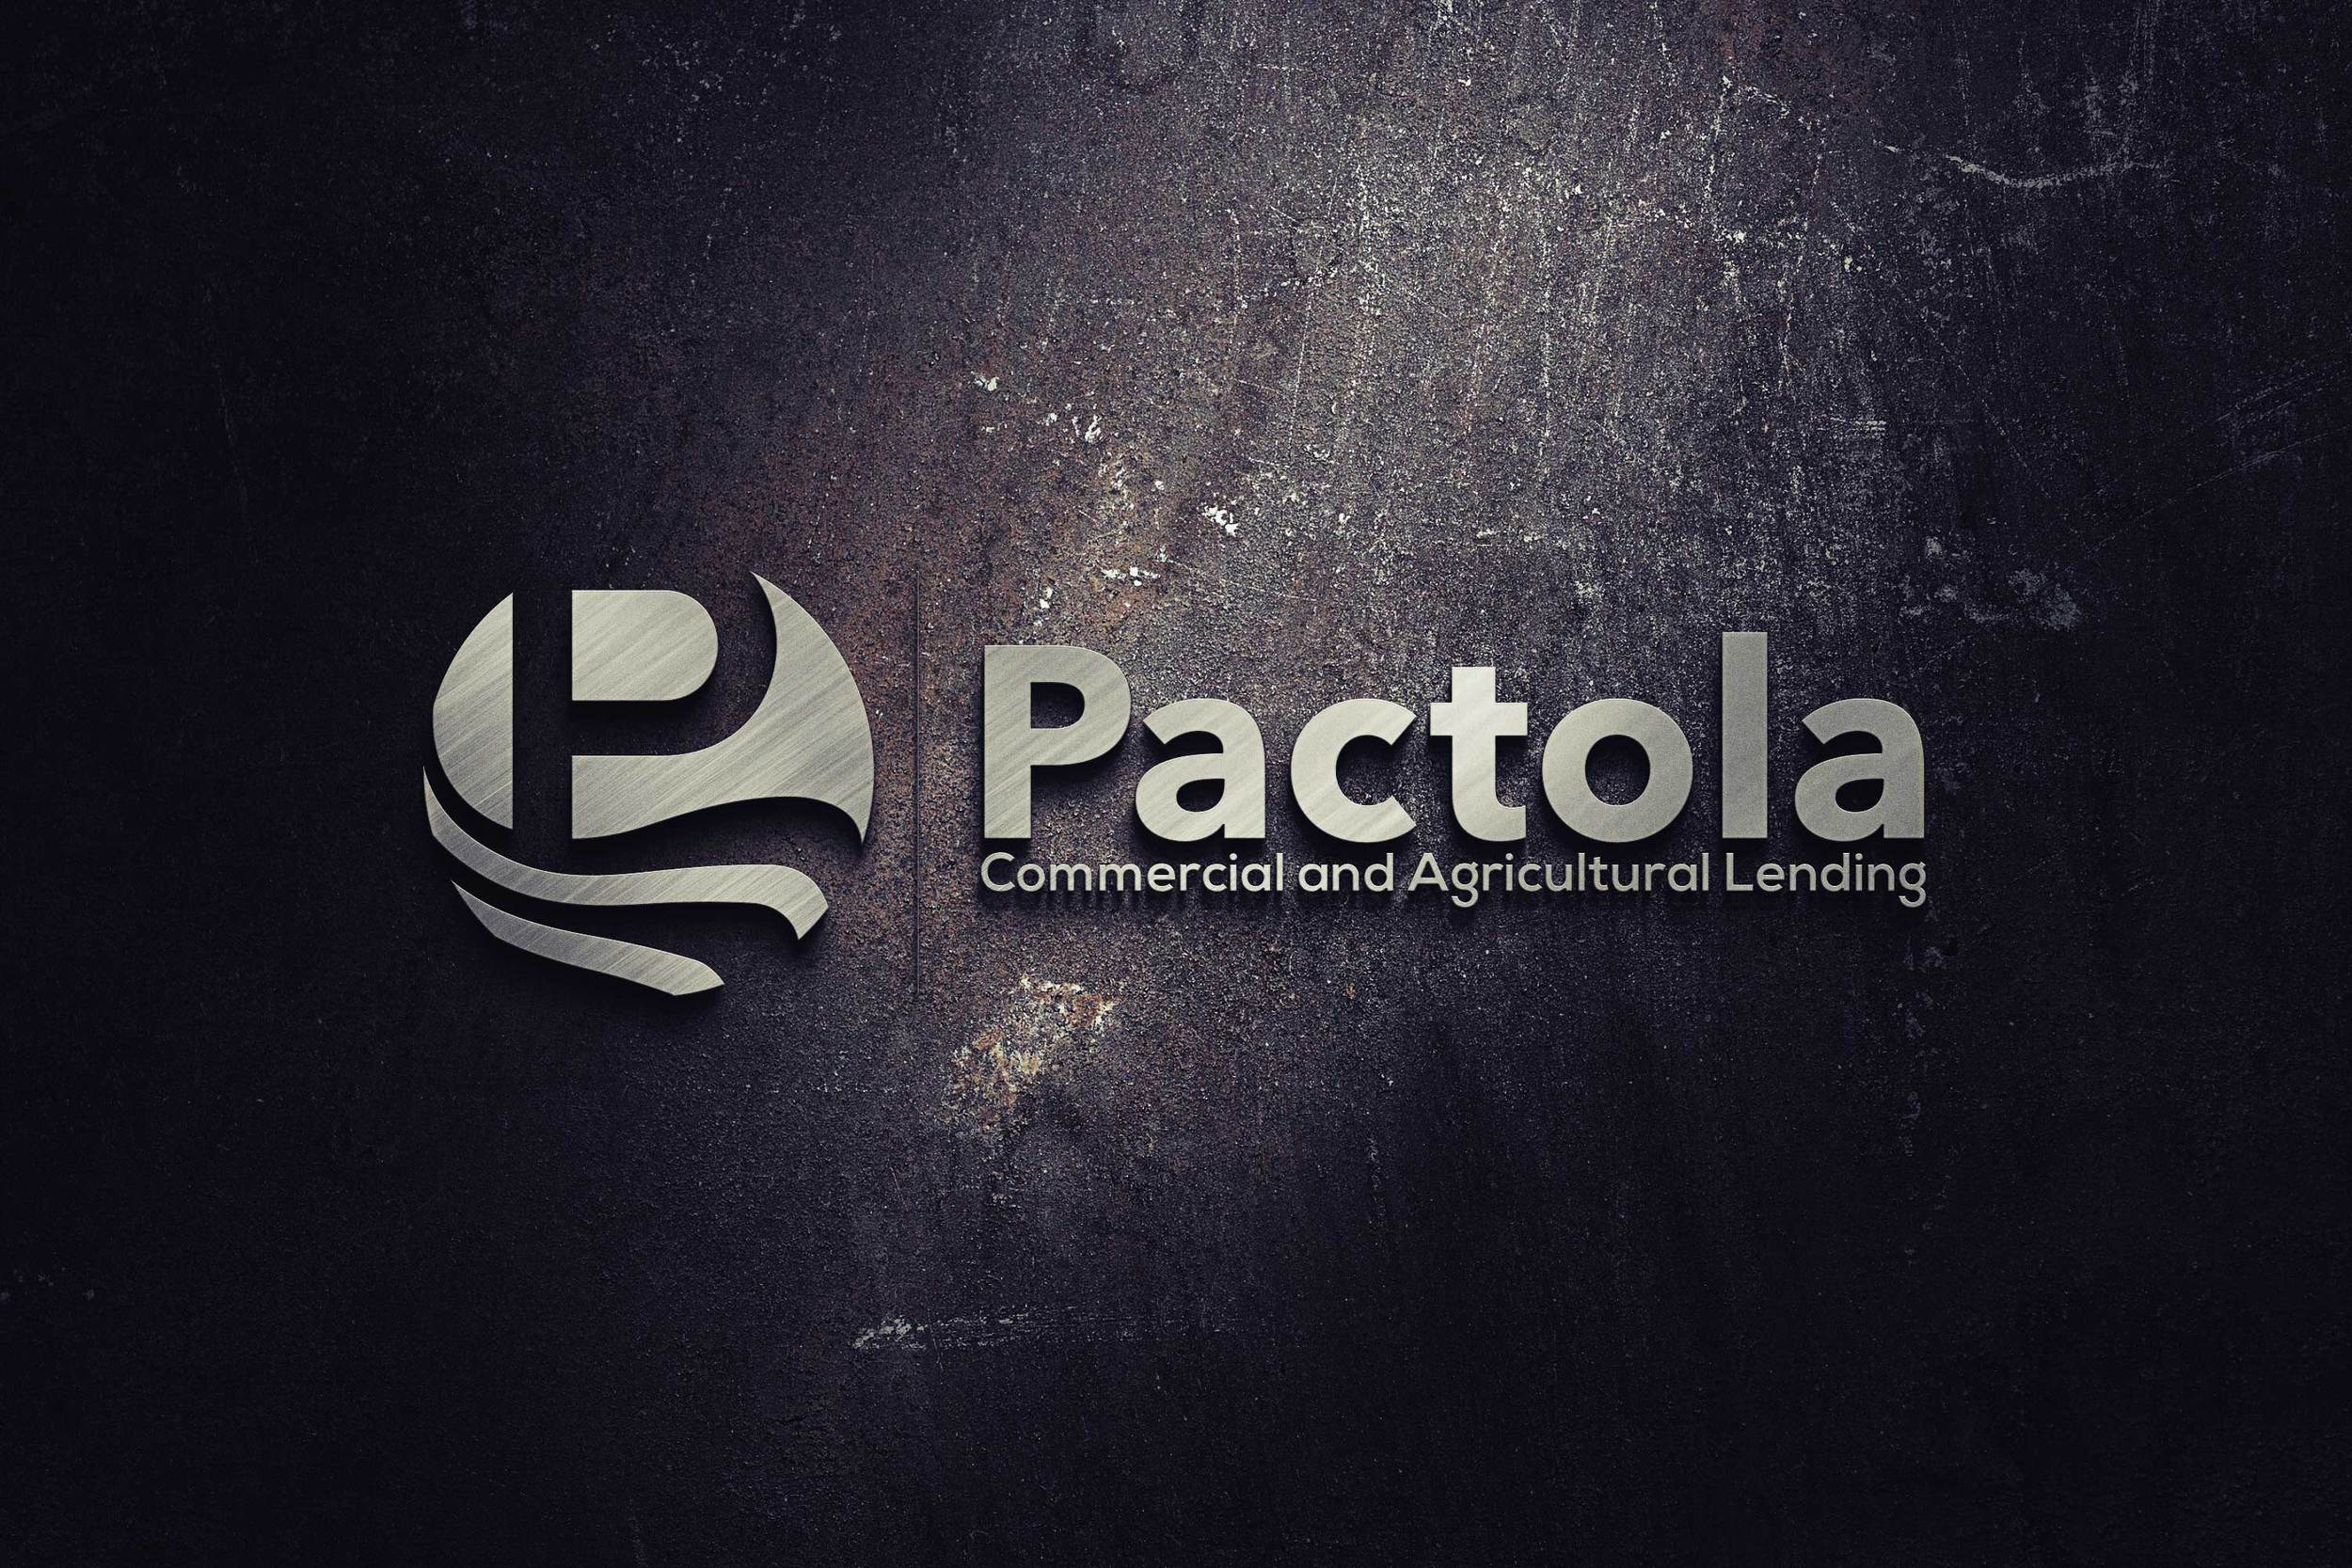 Pactola logo with background